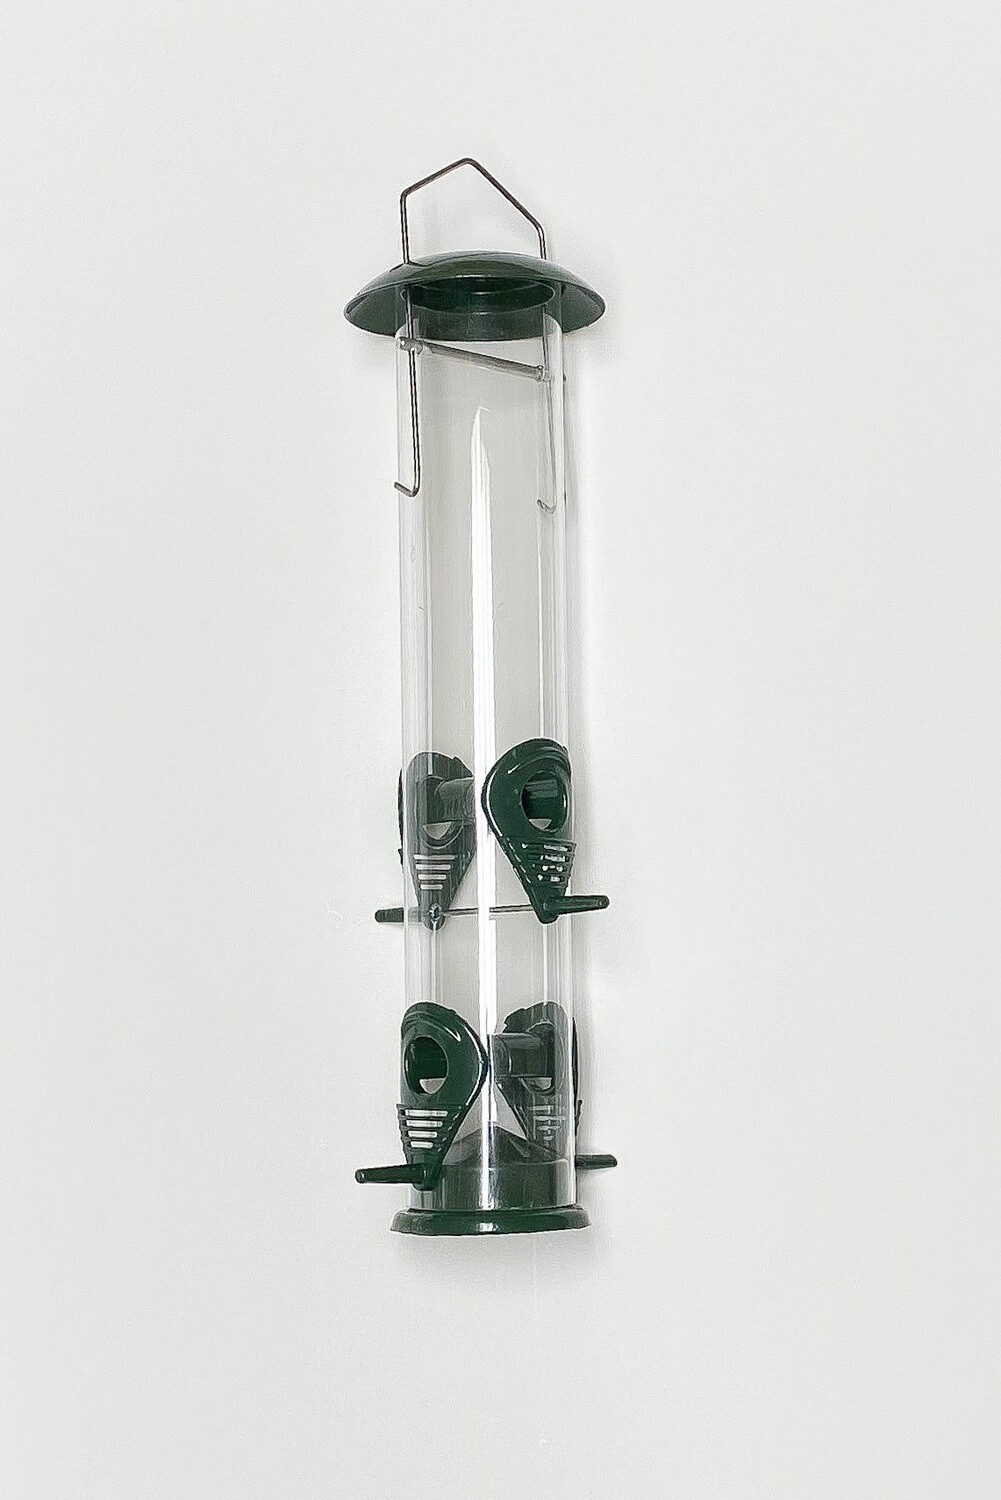 **** FREE SHIPPING **** Bird Feeder - Tube with 4-Metal Ports.